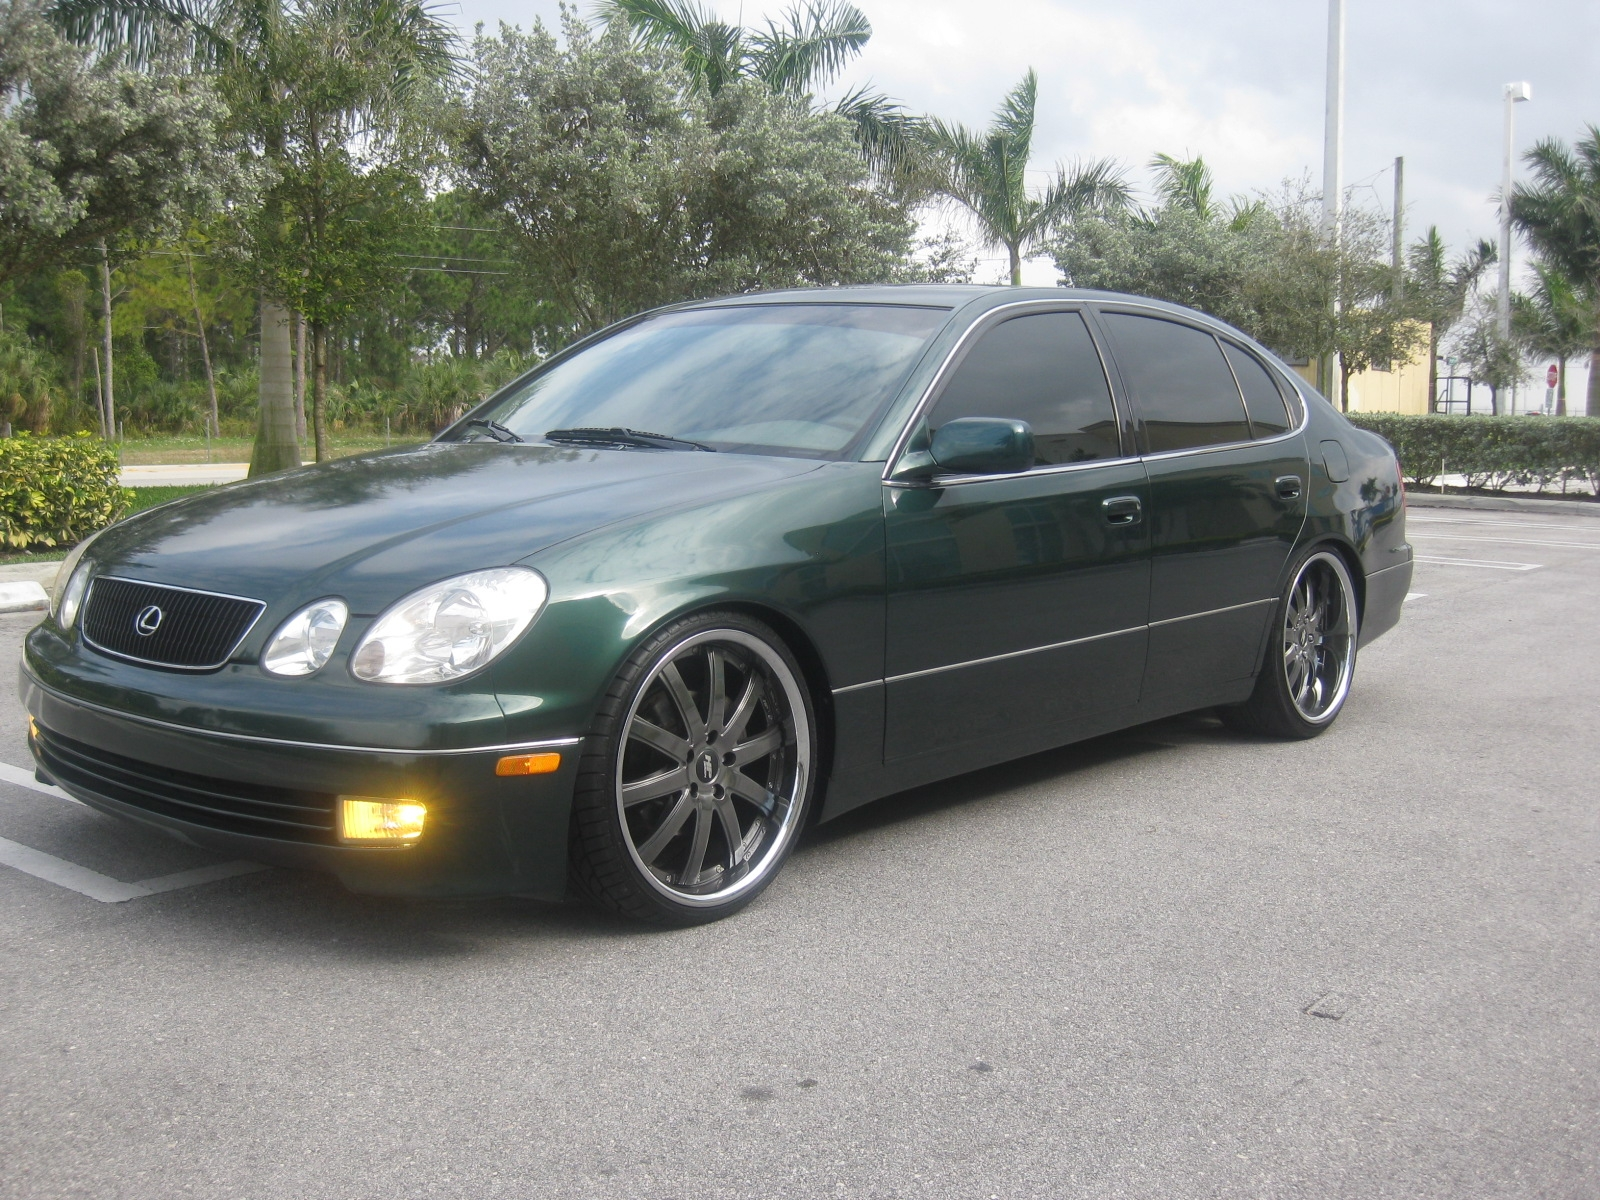 lobster305 1999 Lexus GS 12766826